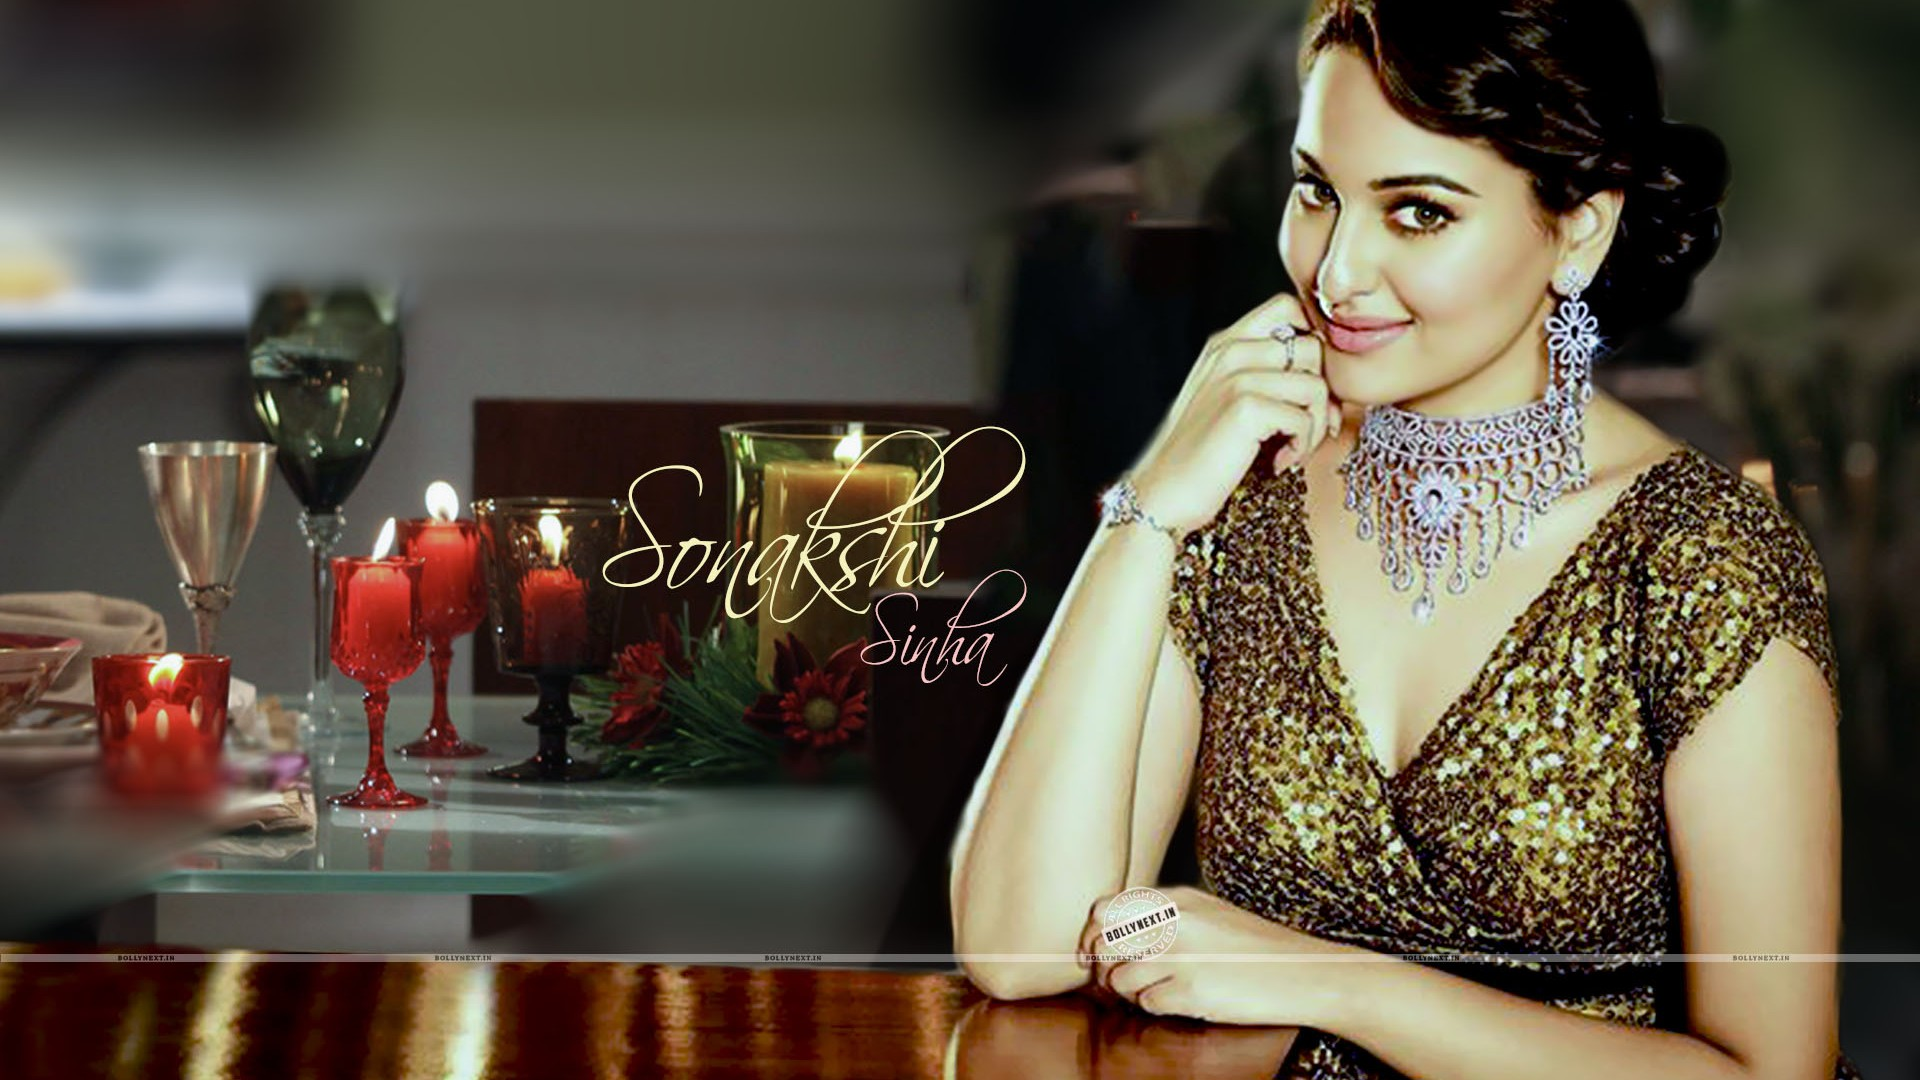 Sonakshi Sinha Wallpapers High Resolution And Quality Download